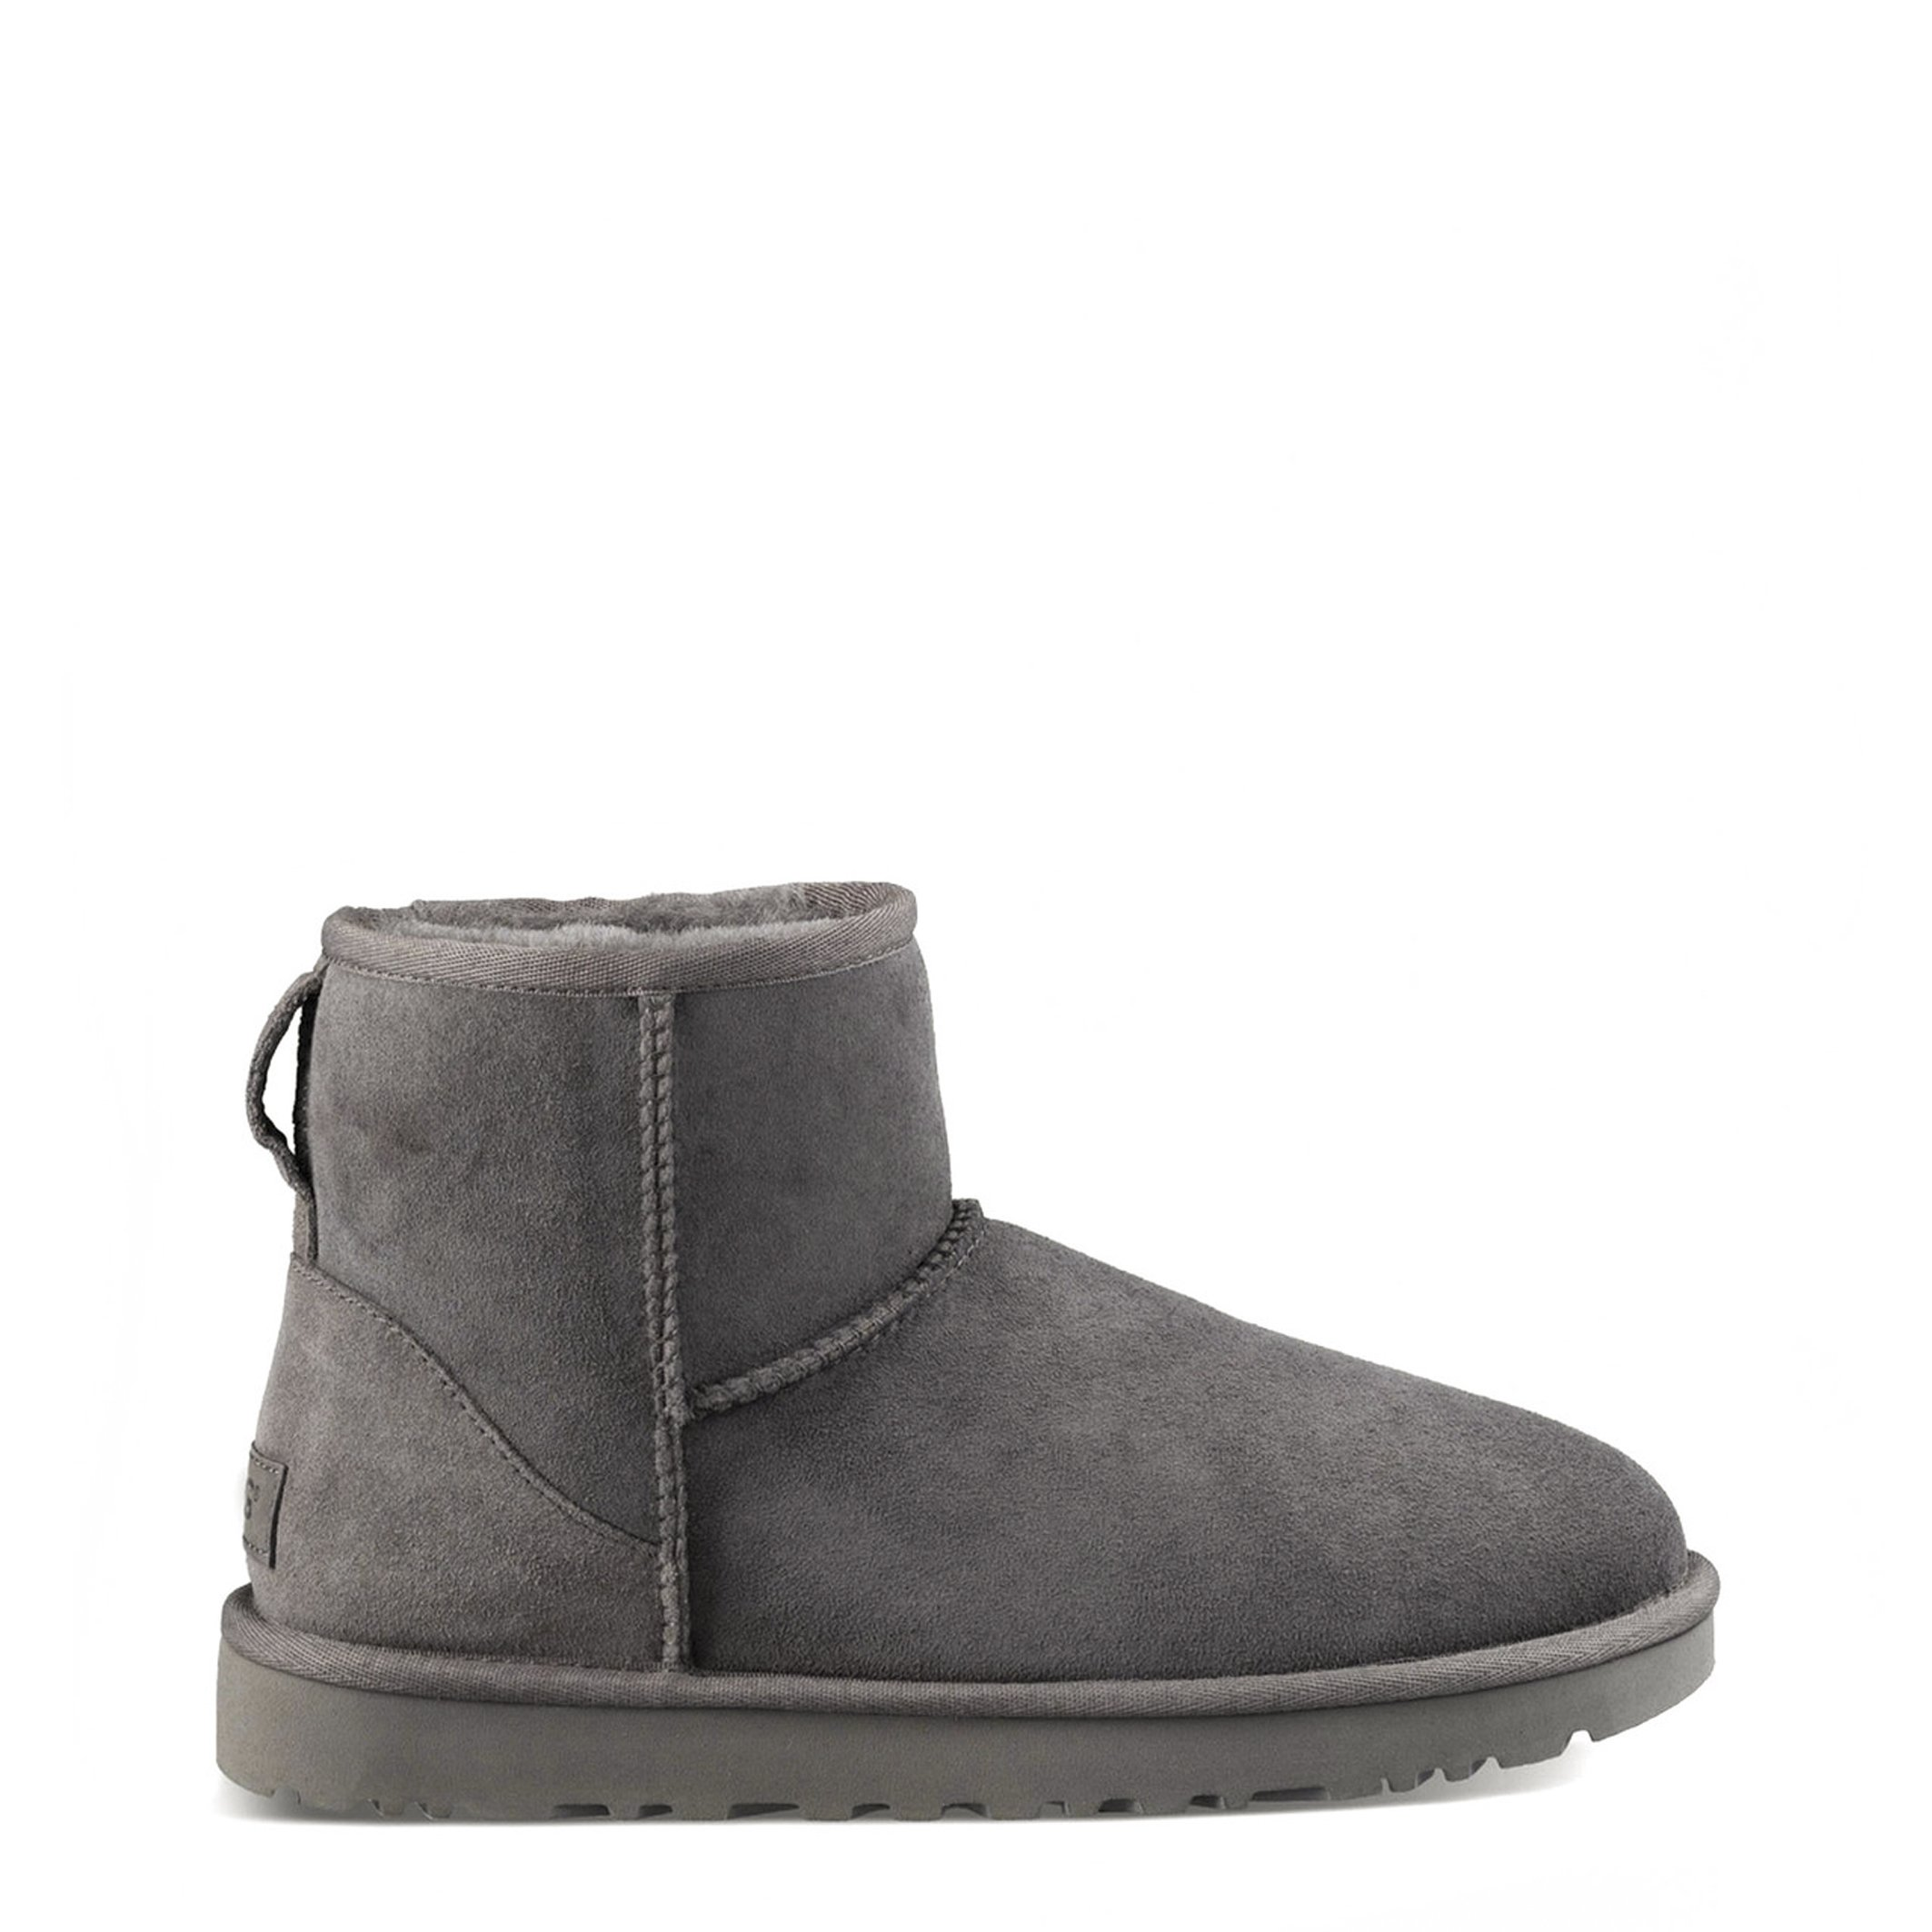 UGG Women's Ankle Boot Various Colours 1016222 - grey-2 EU 36